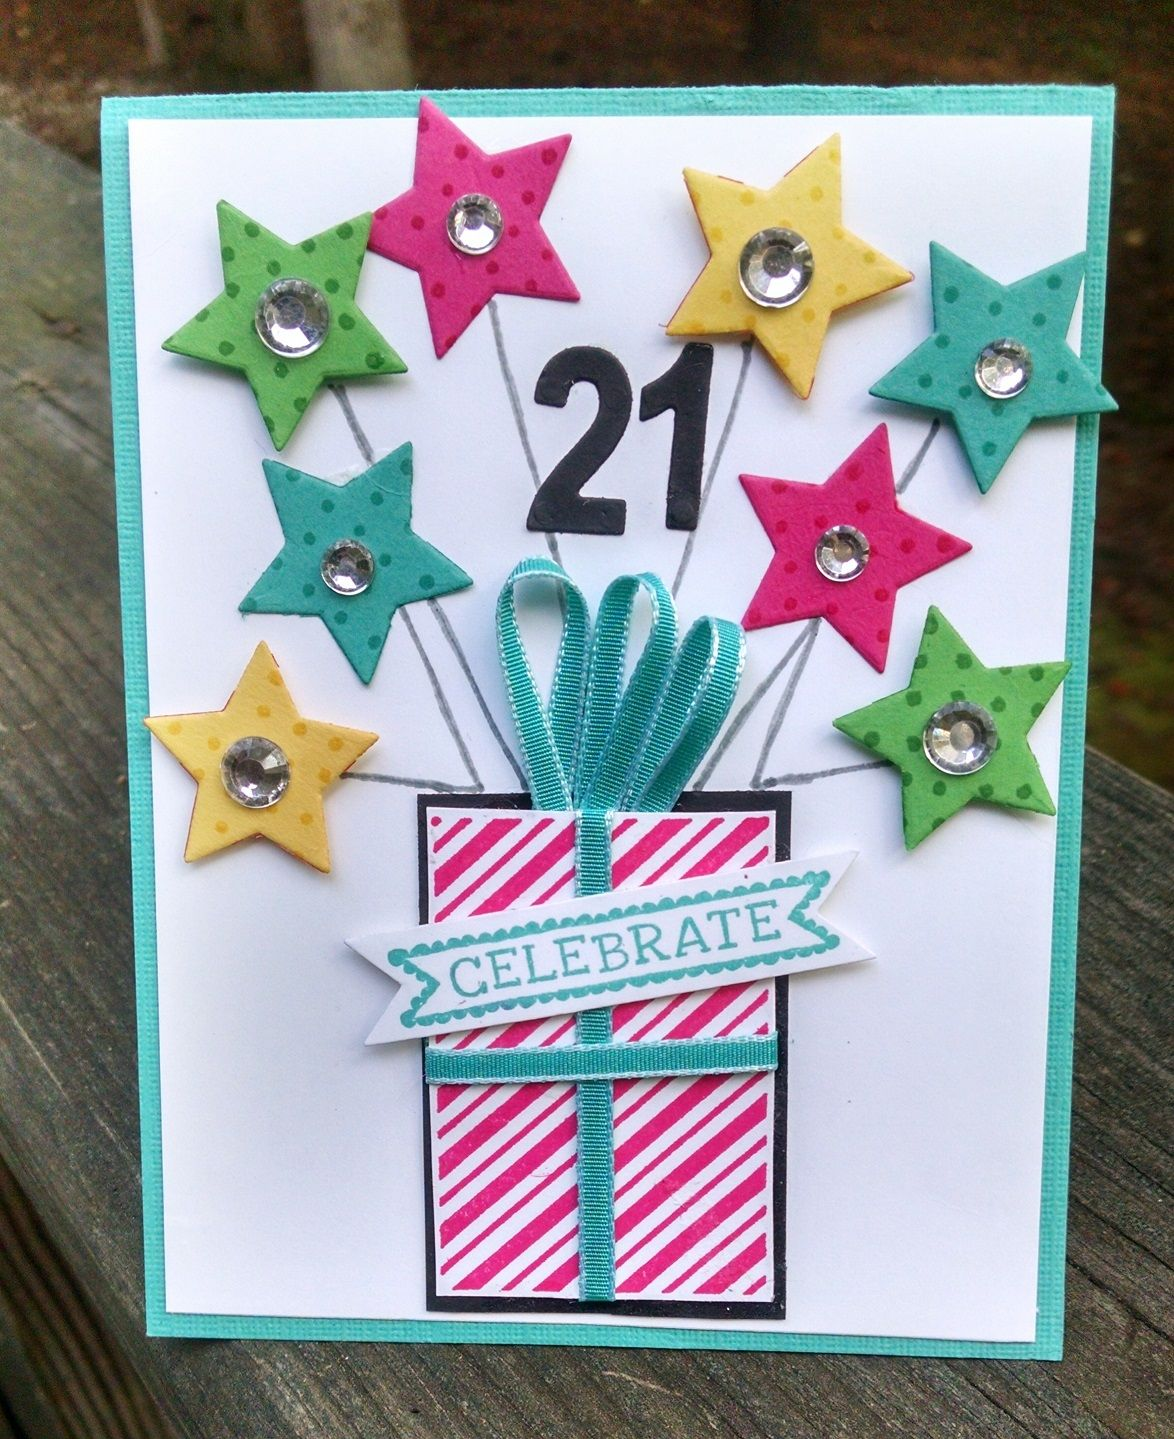 Card Making Ideas 21st Birthday Part - 49: Sharonu0027s Inkie Fingers: Happy 21st Birthday!